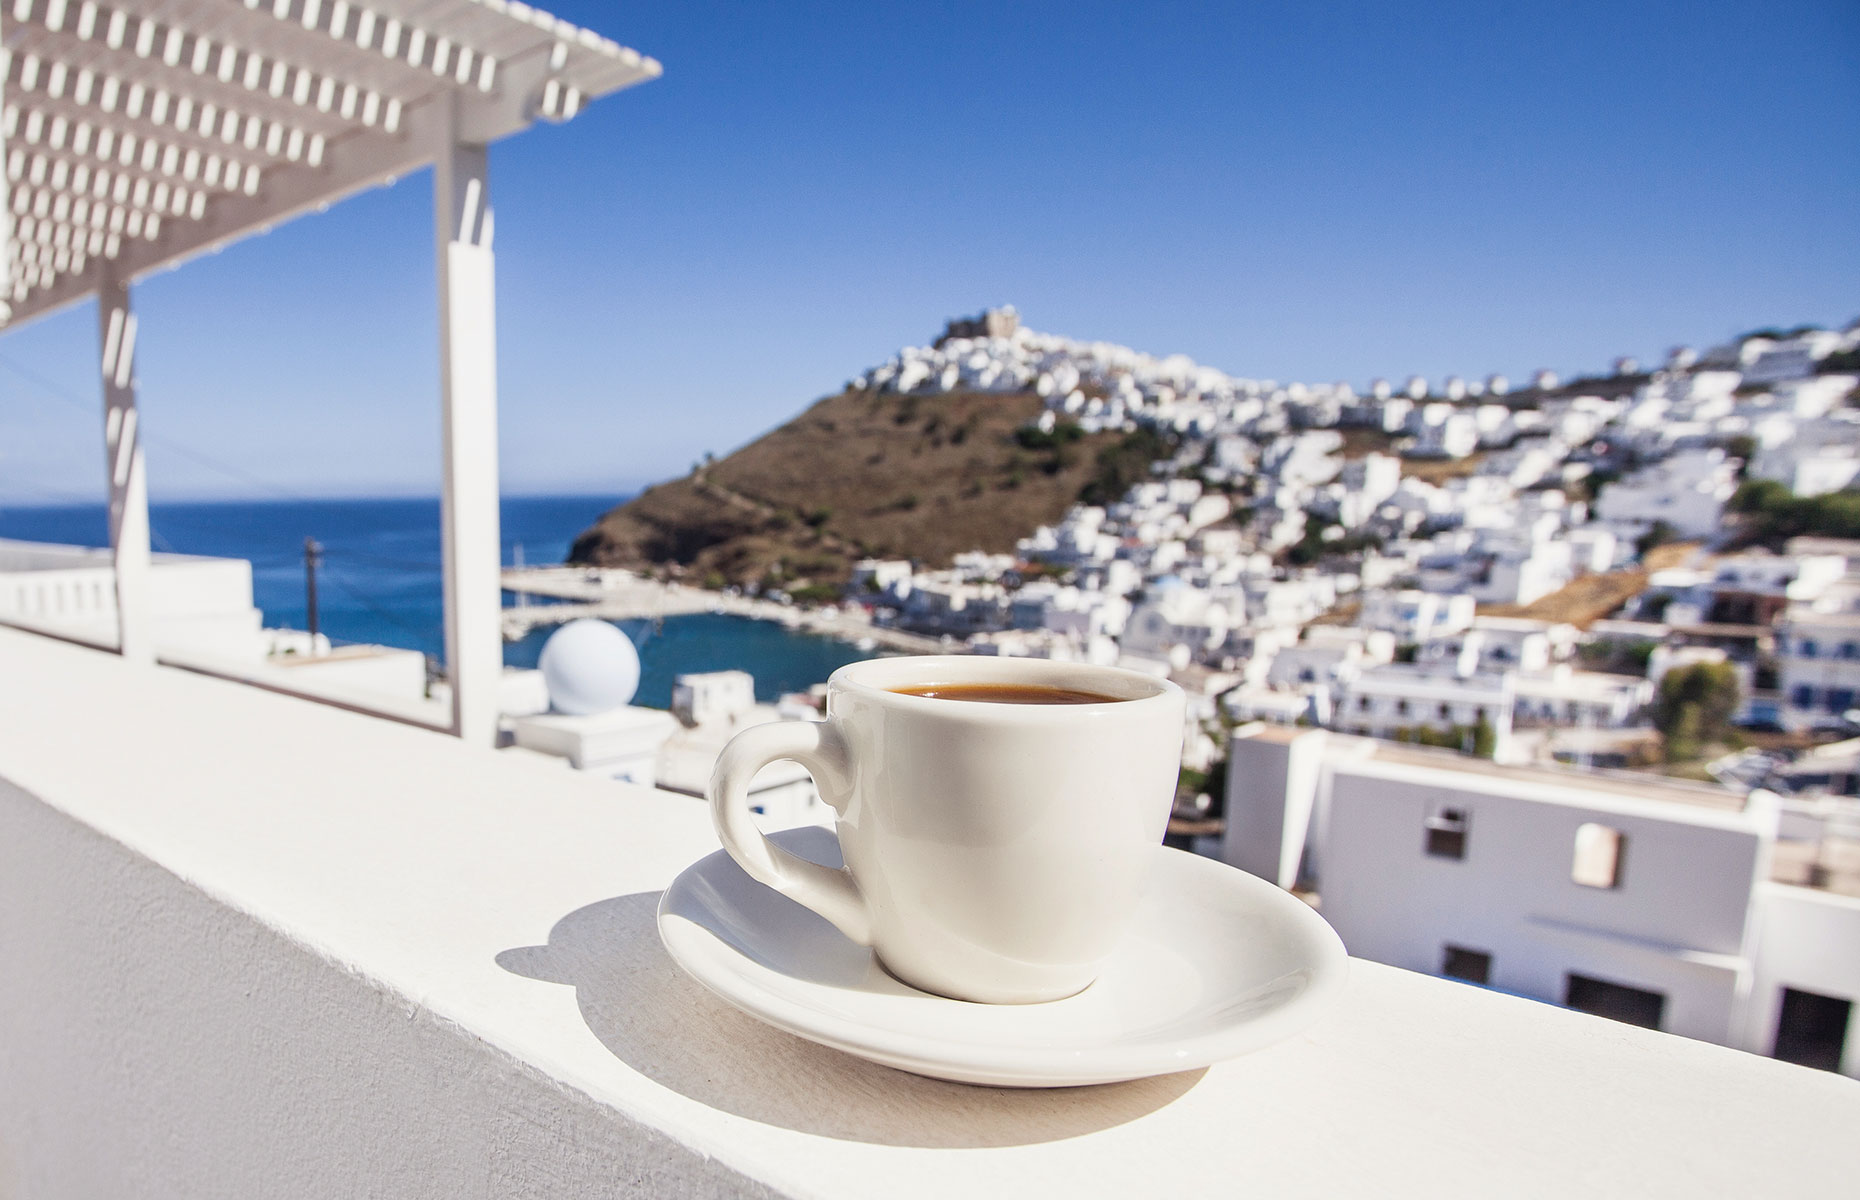 Bringing your own coffee on a self-catering holiday will save cash and disappointment